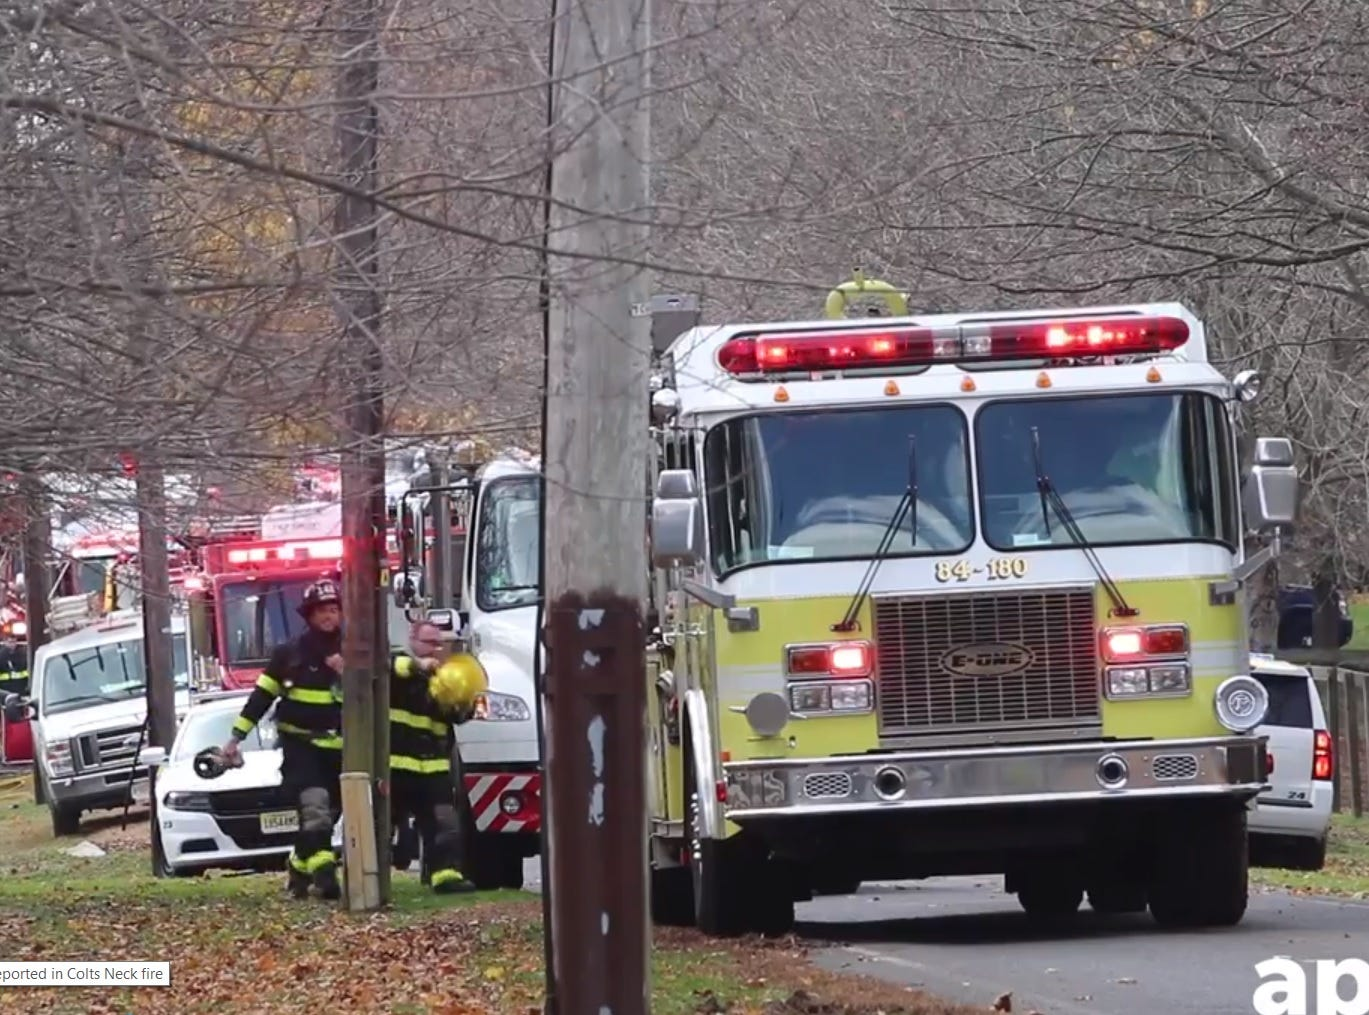 The scene of a fatal fire in Colts Neck on Nov. 20.